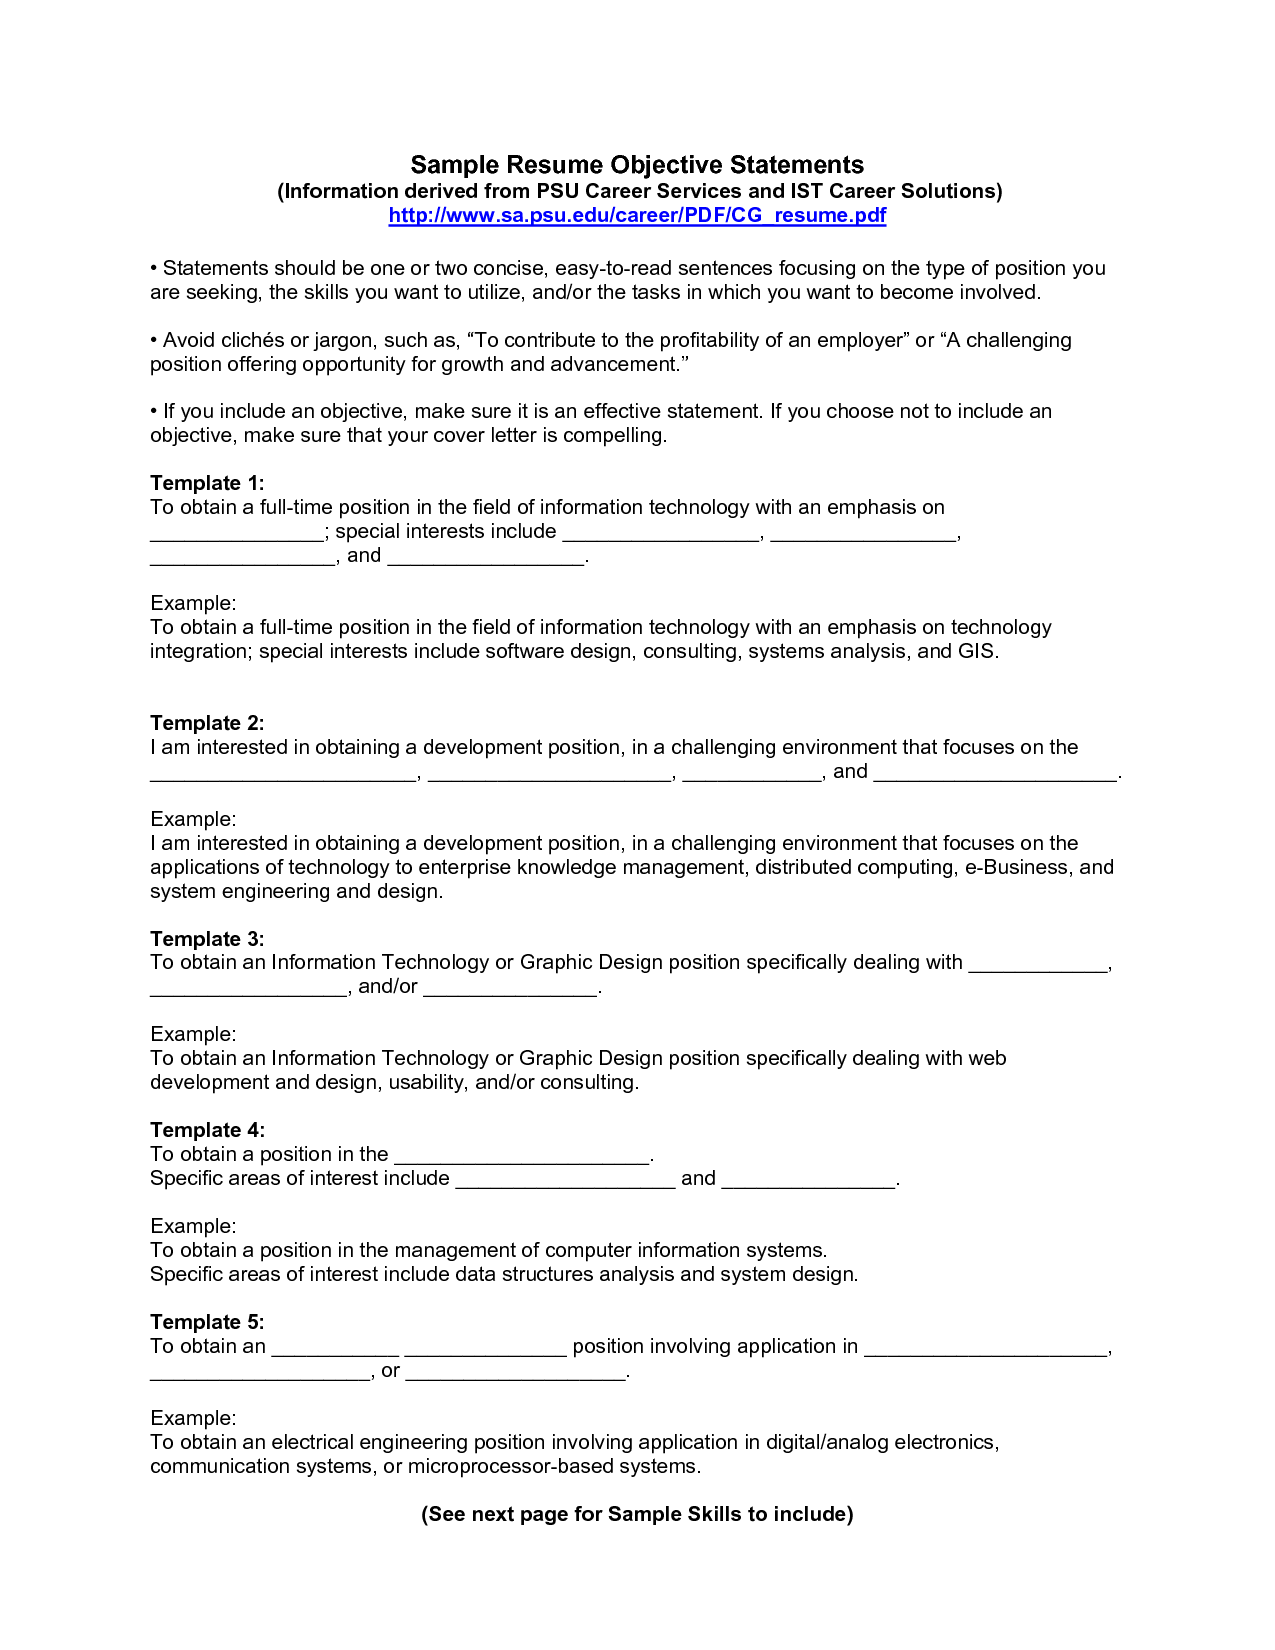 Resume Objective Examples. Professional Objective Resumes